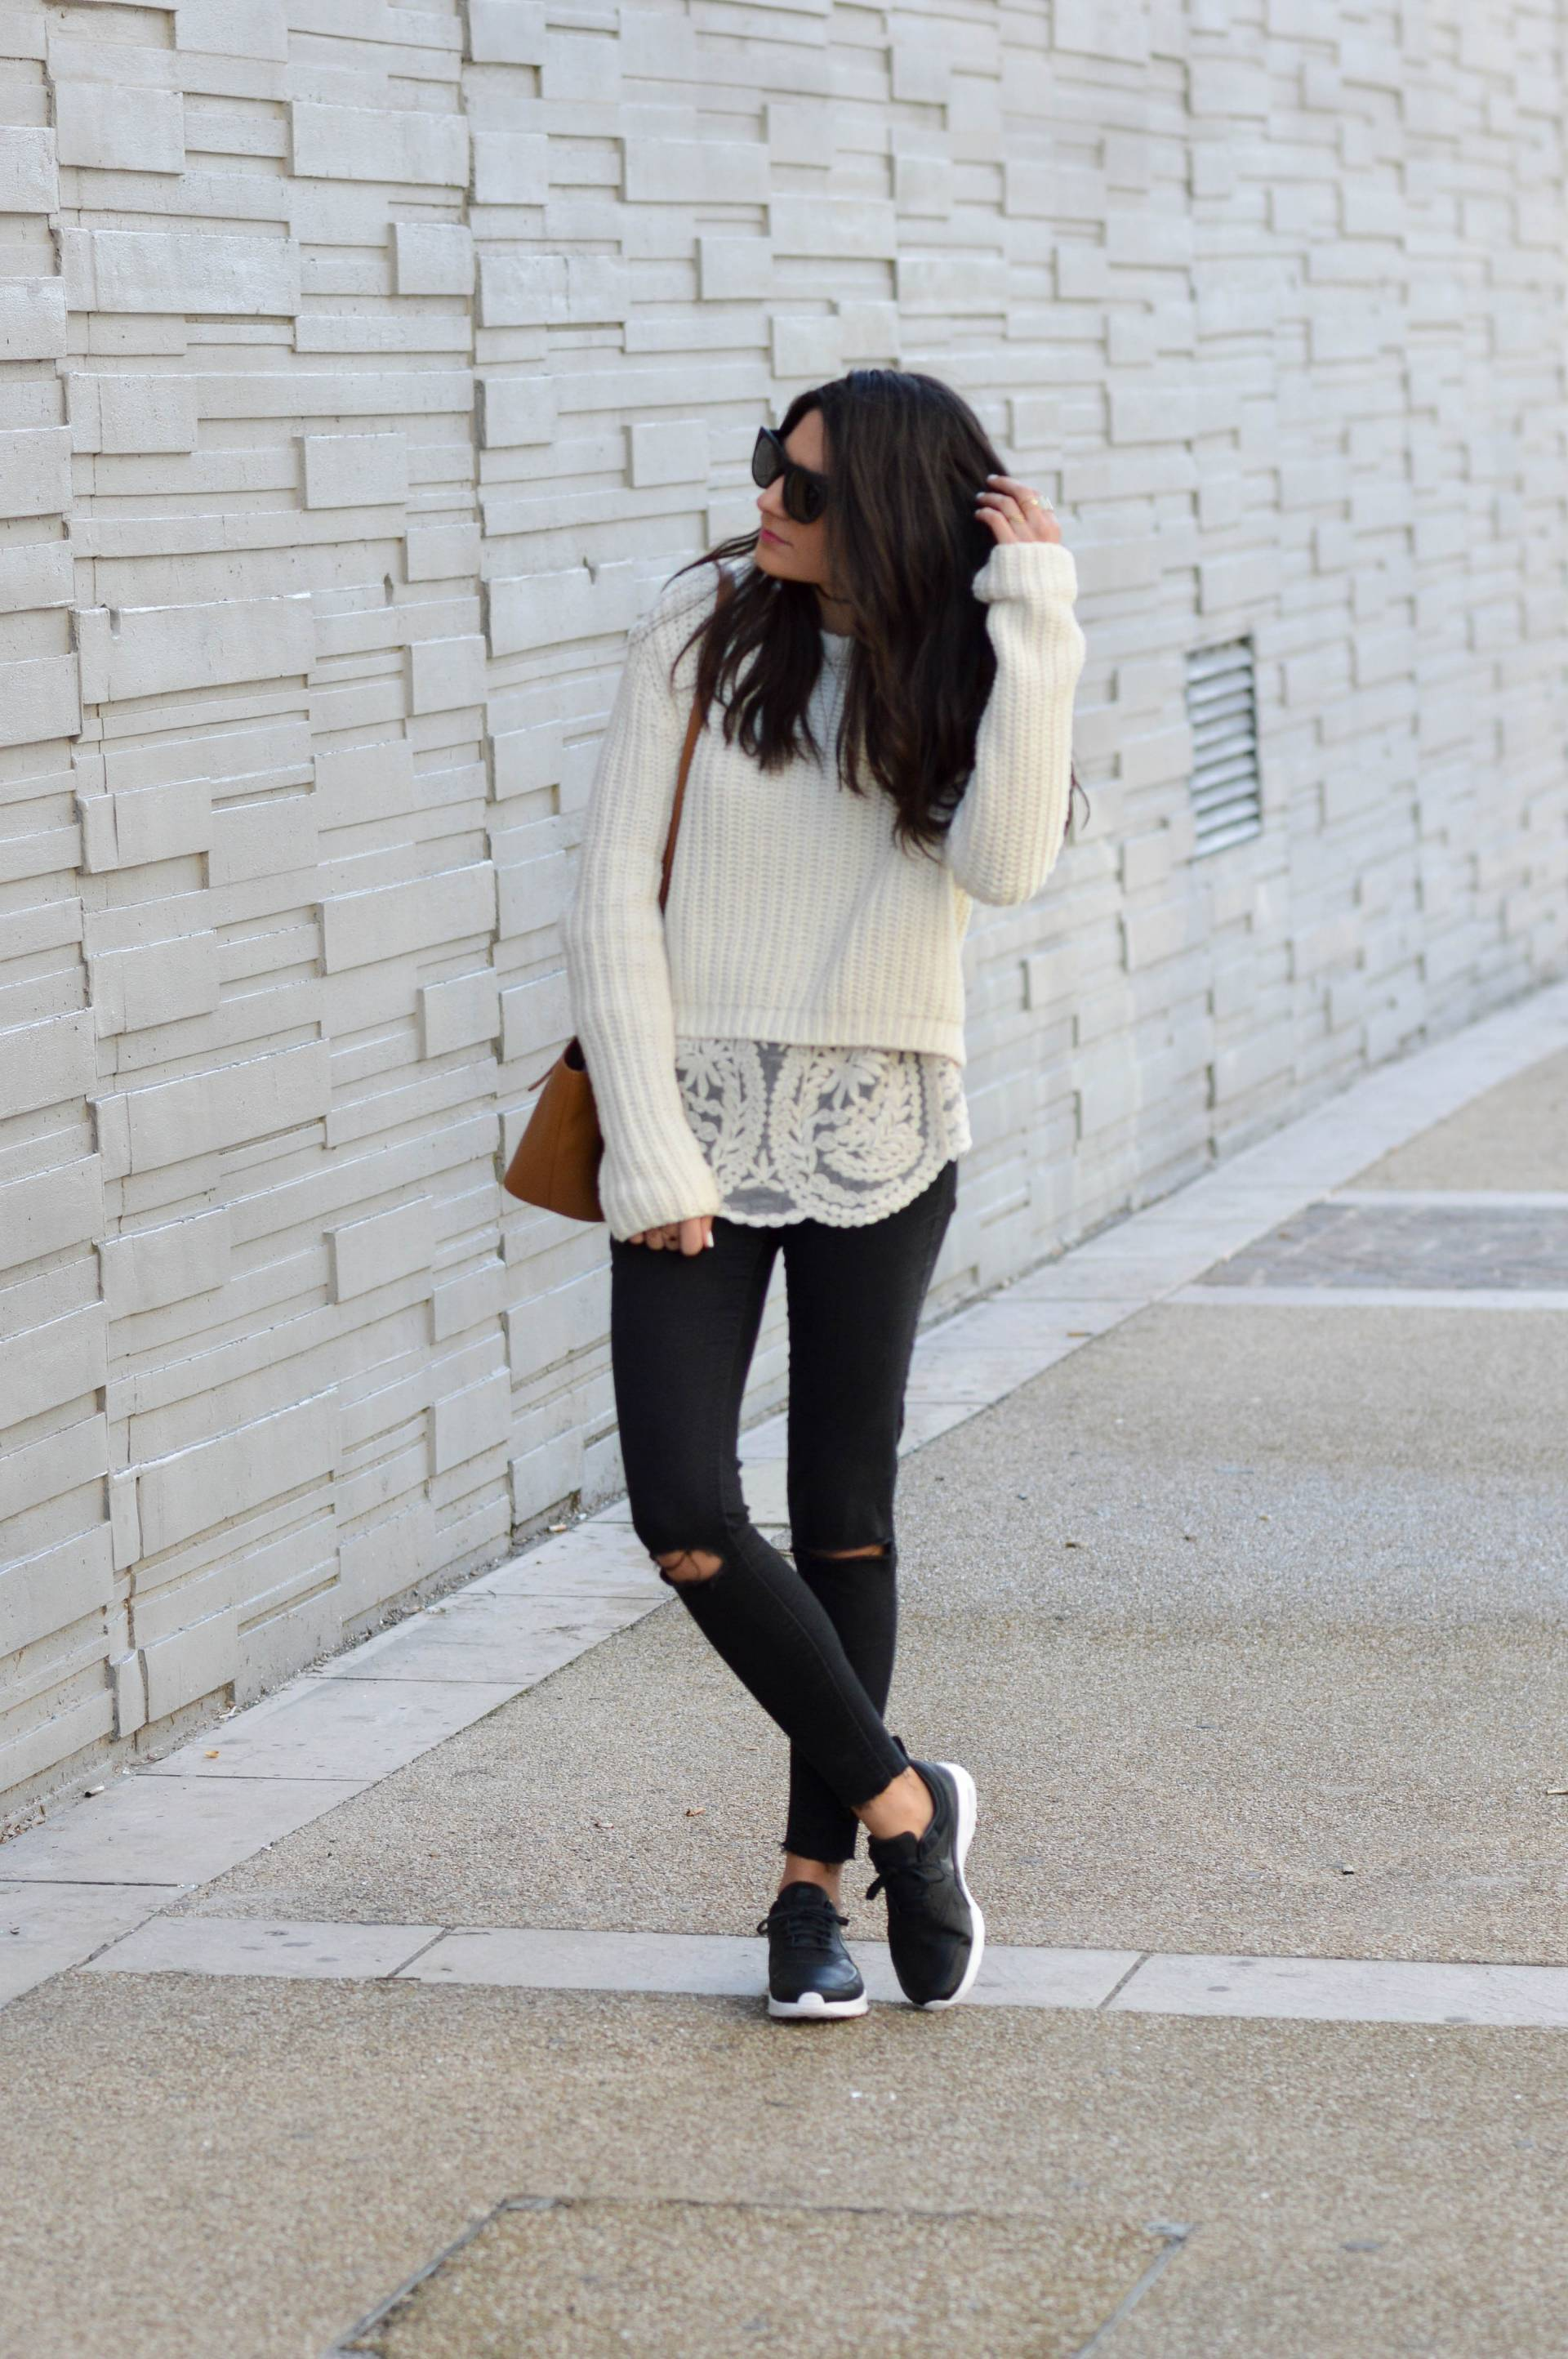 Just because it's spring doesn't mean you should ditch your knitwear! Federica L. has created a cute spring chic look here by pairing ripped black jeans with a white lace top and a knitted sweater. Sweater: Pull & Bear, Blouse: Pop My Dress, Trousers: Zara, Bag: Elleme.